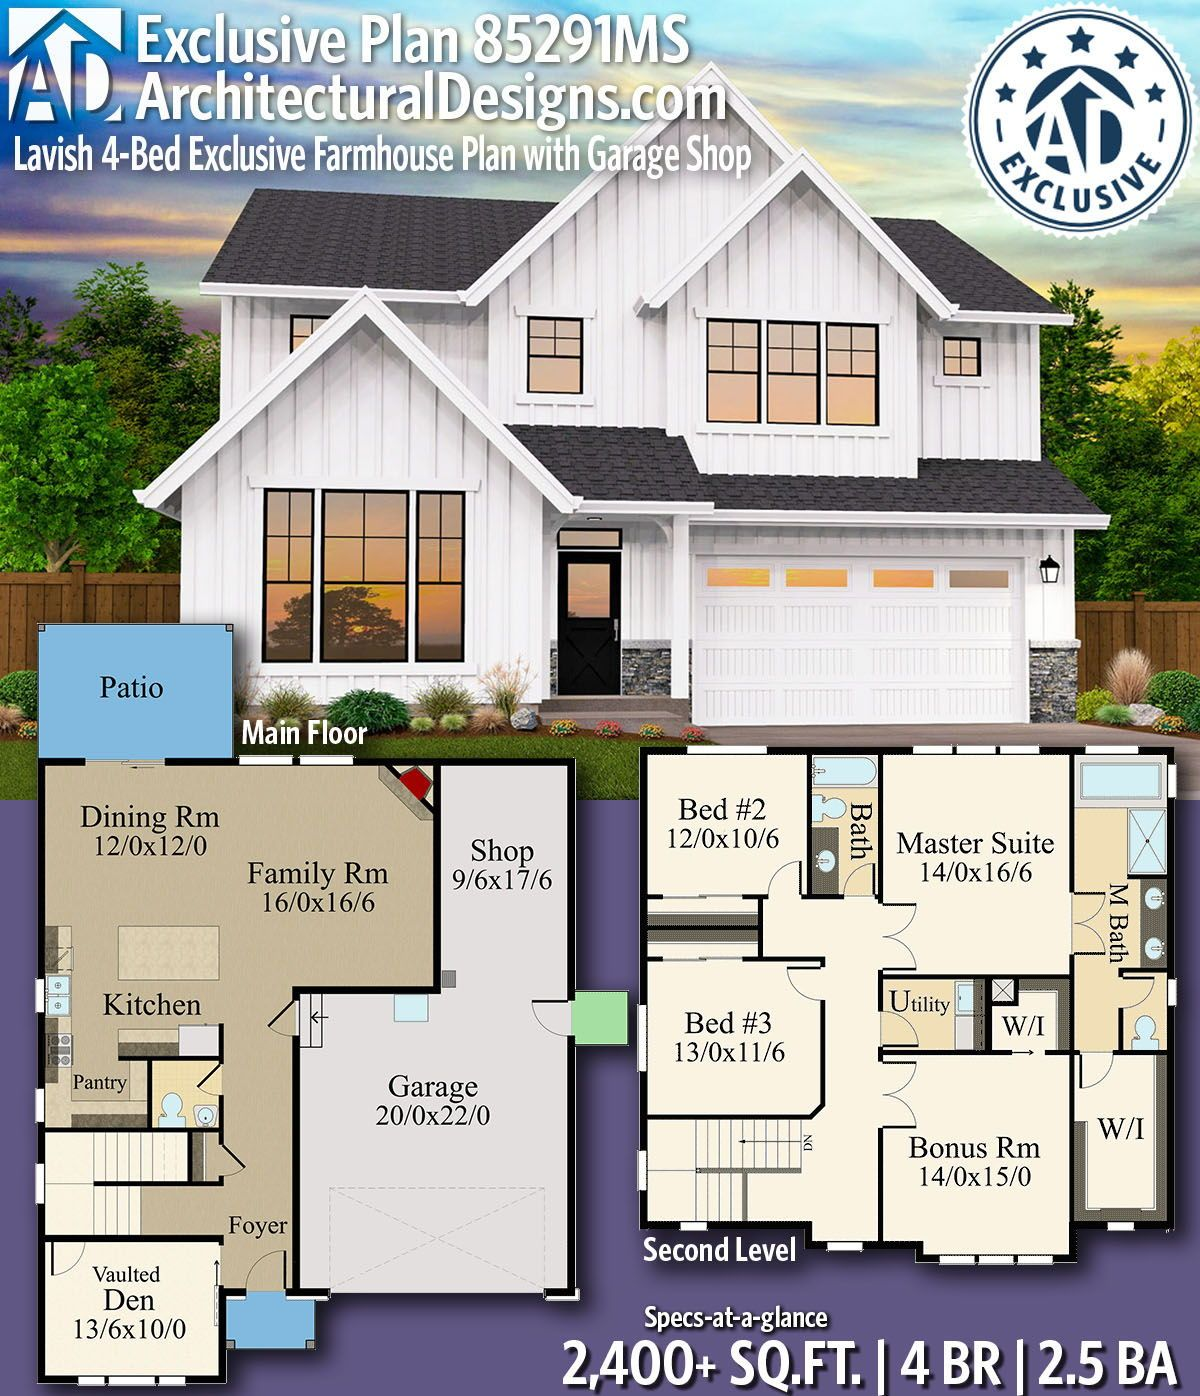 Architectural designs exclusive farmhouse plan ms gives you bedrooms baths and also pin by drummond house plans on small  affordable home rh pinterest